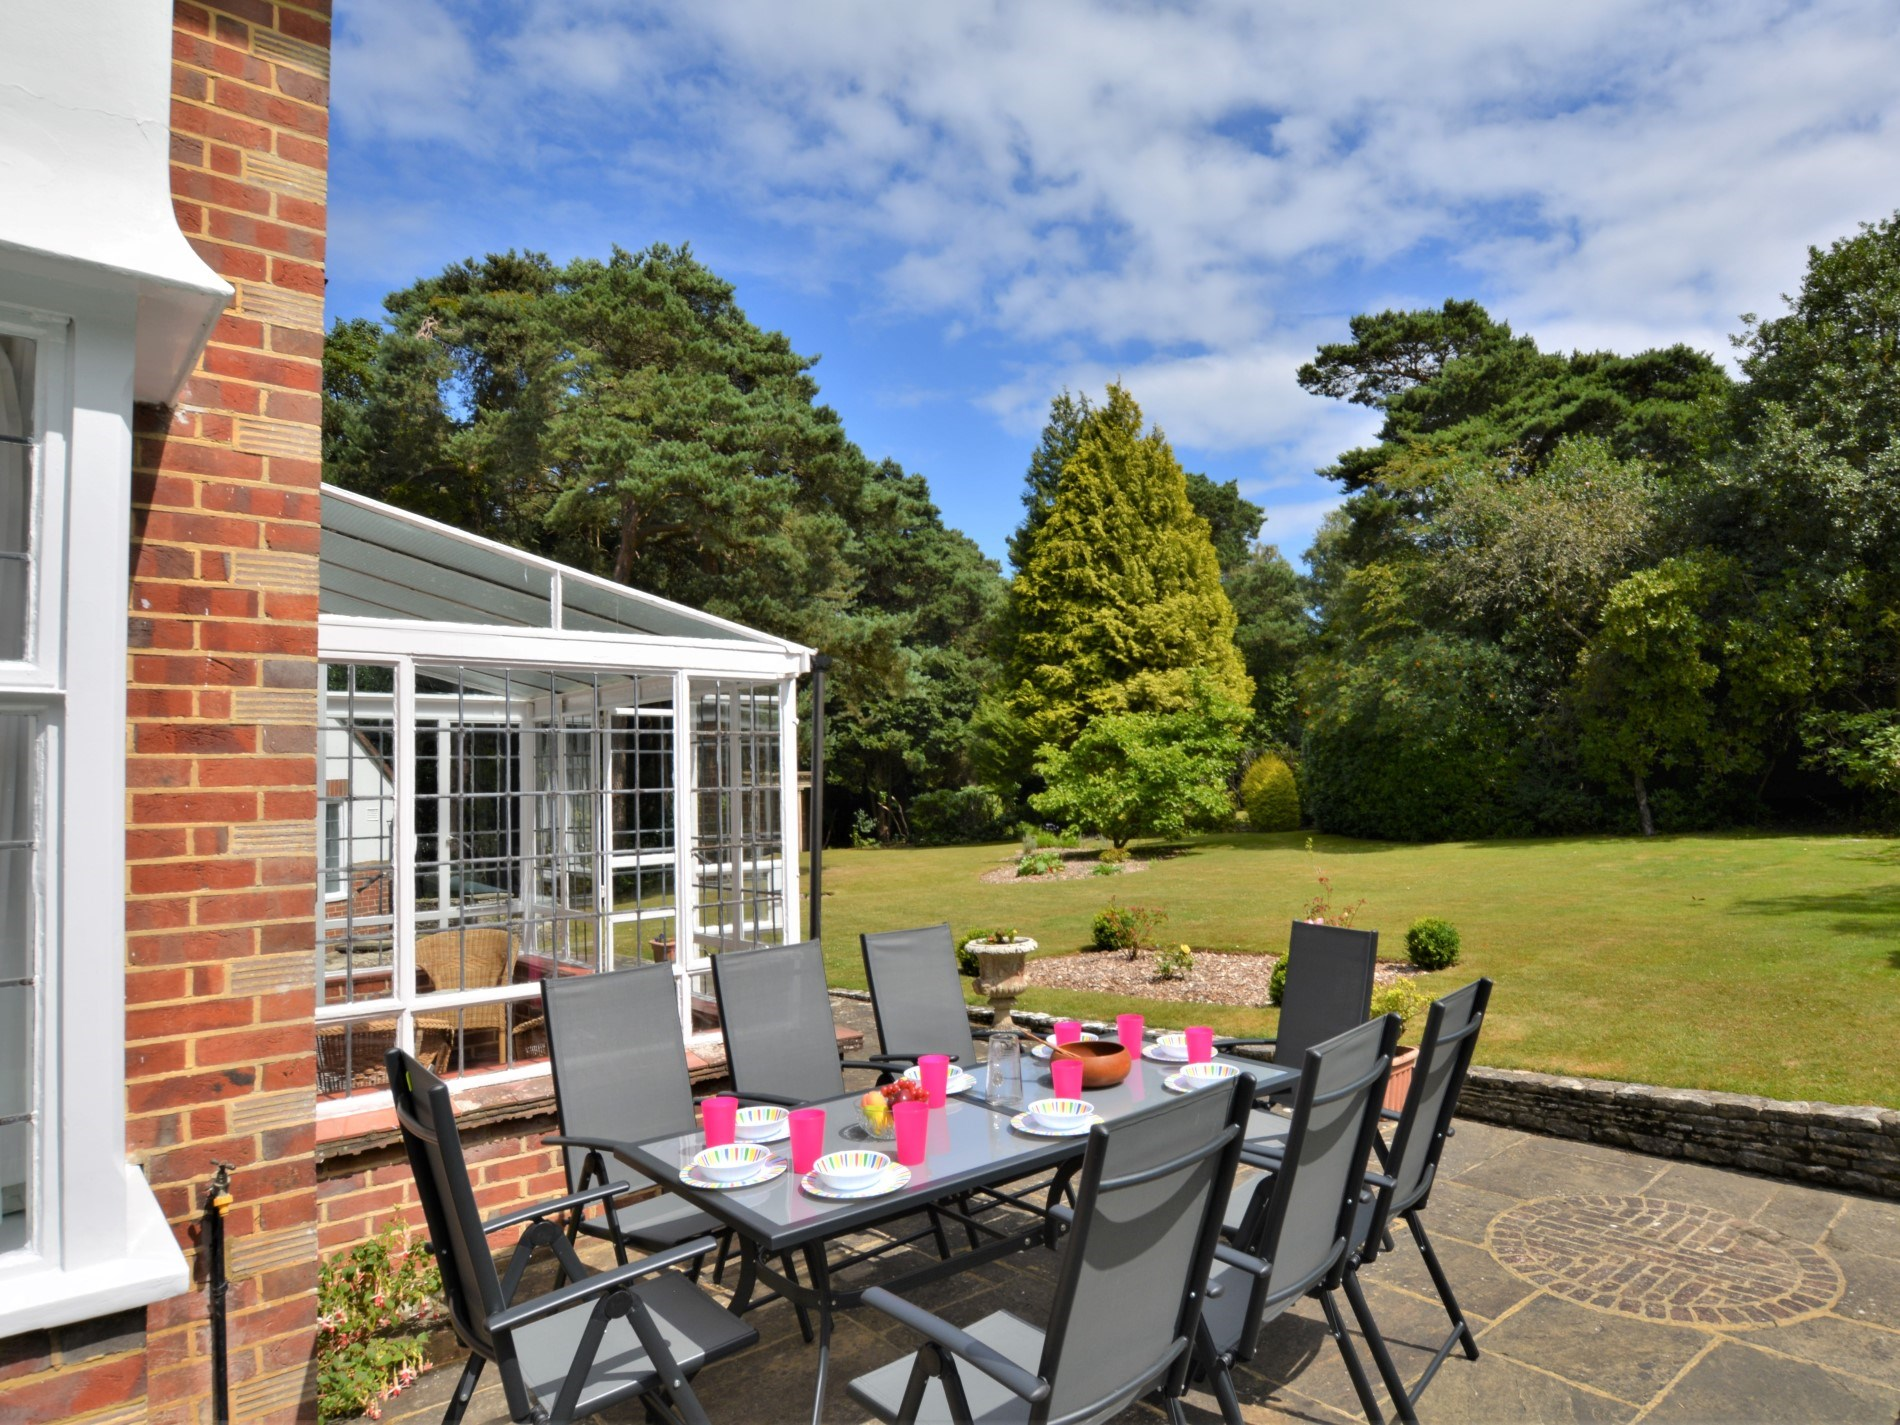 Enjoy al fresco dining in the spacious 1 acre grounds